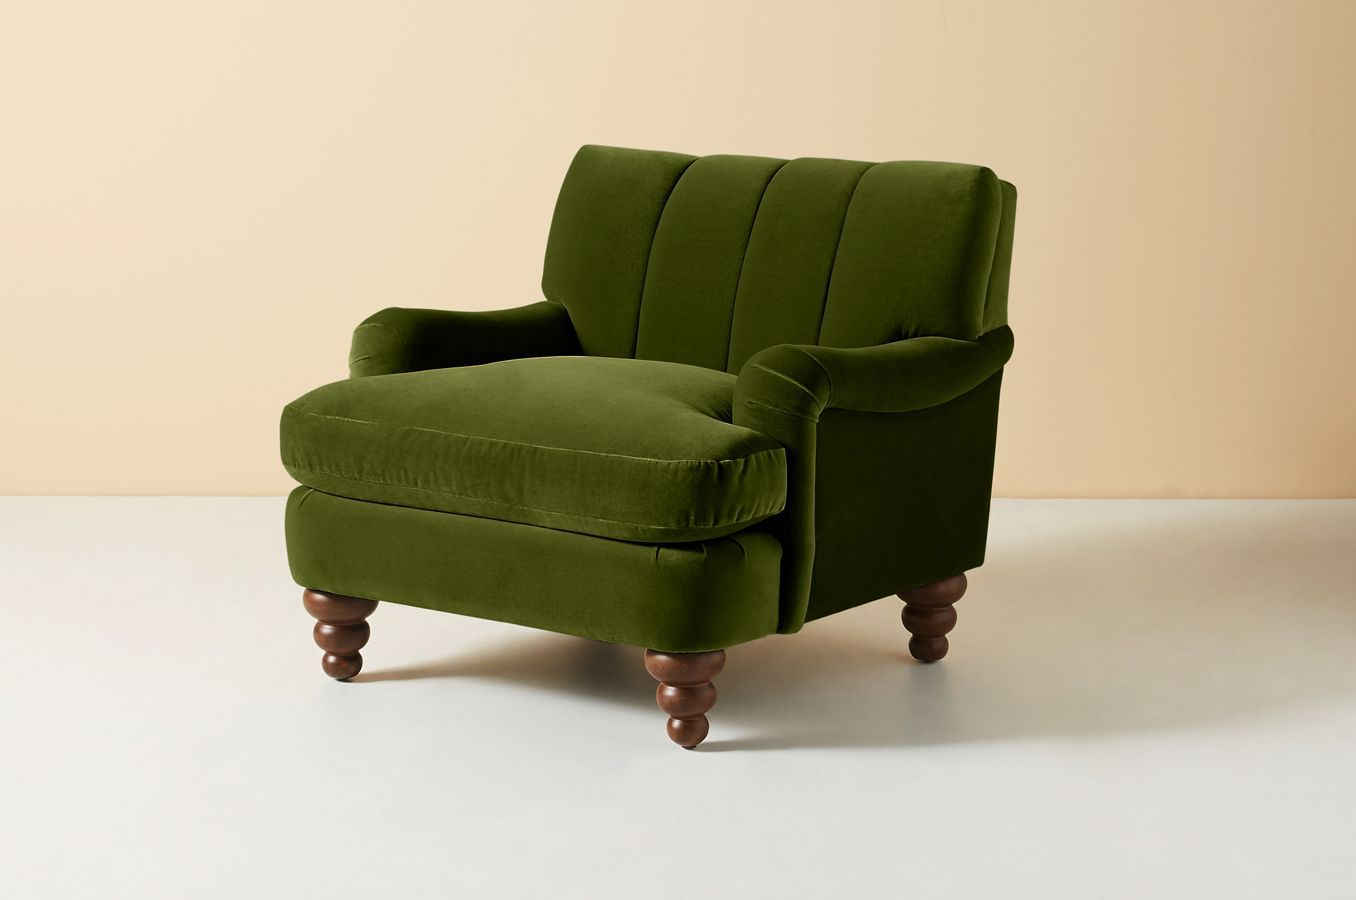 Channel Tufted Occasional Chair In 2020 Occasional Chairs Velvet Occasional Chair Green Velvet Chair #occasional #chair #living #room